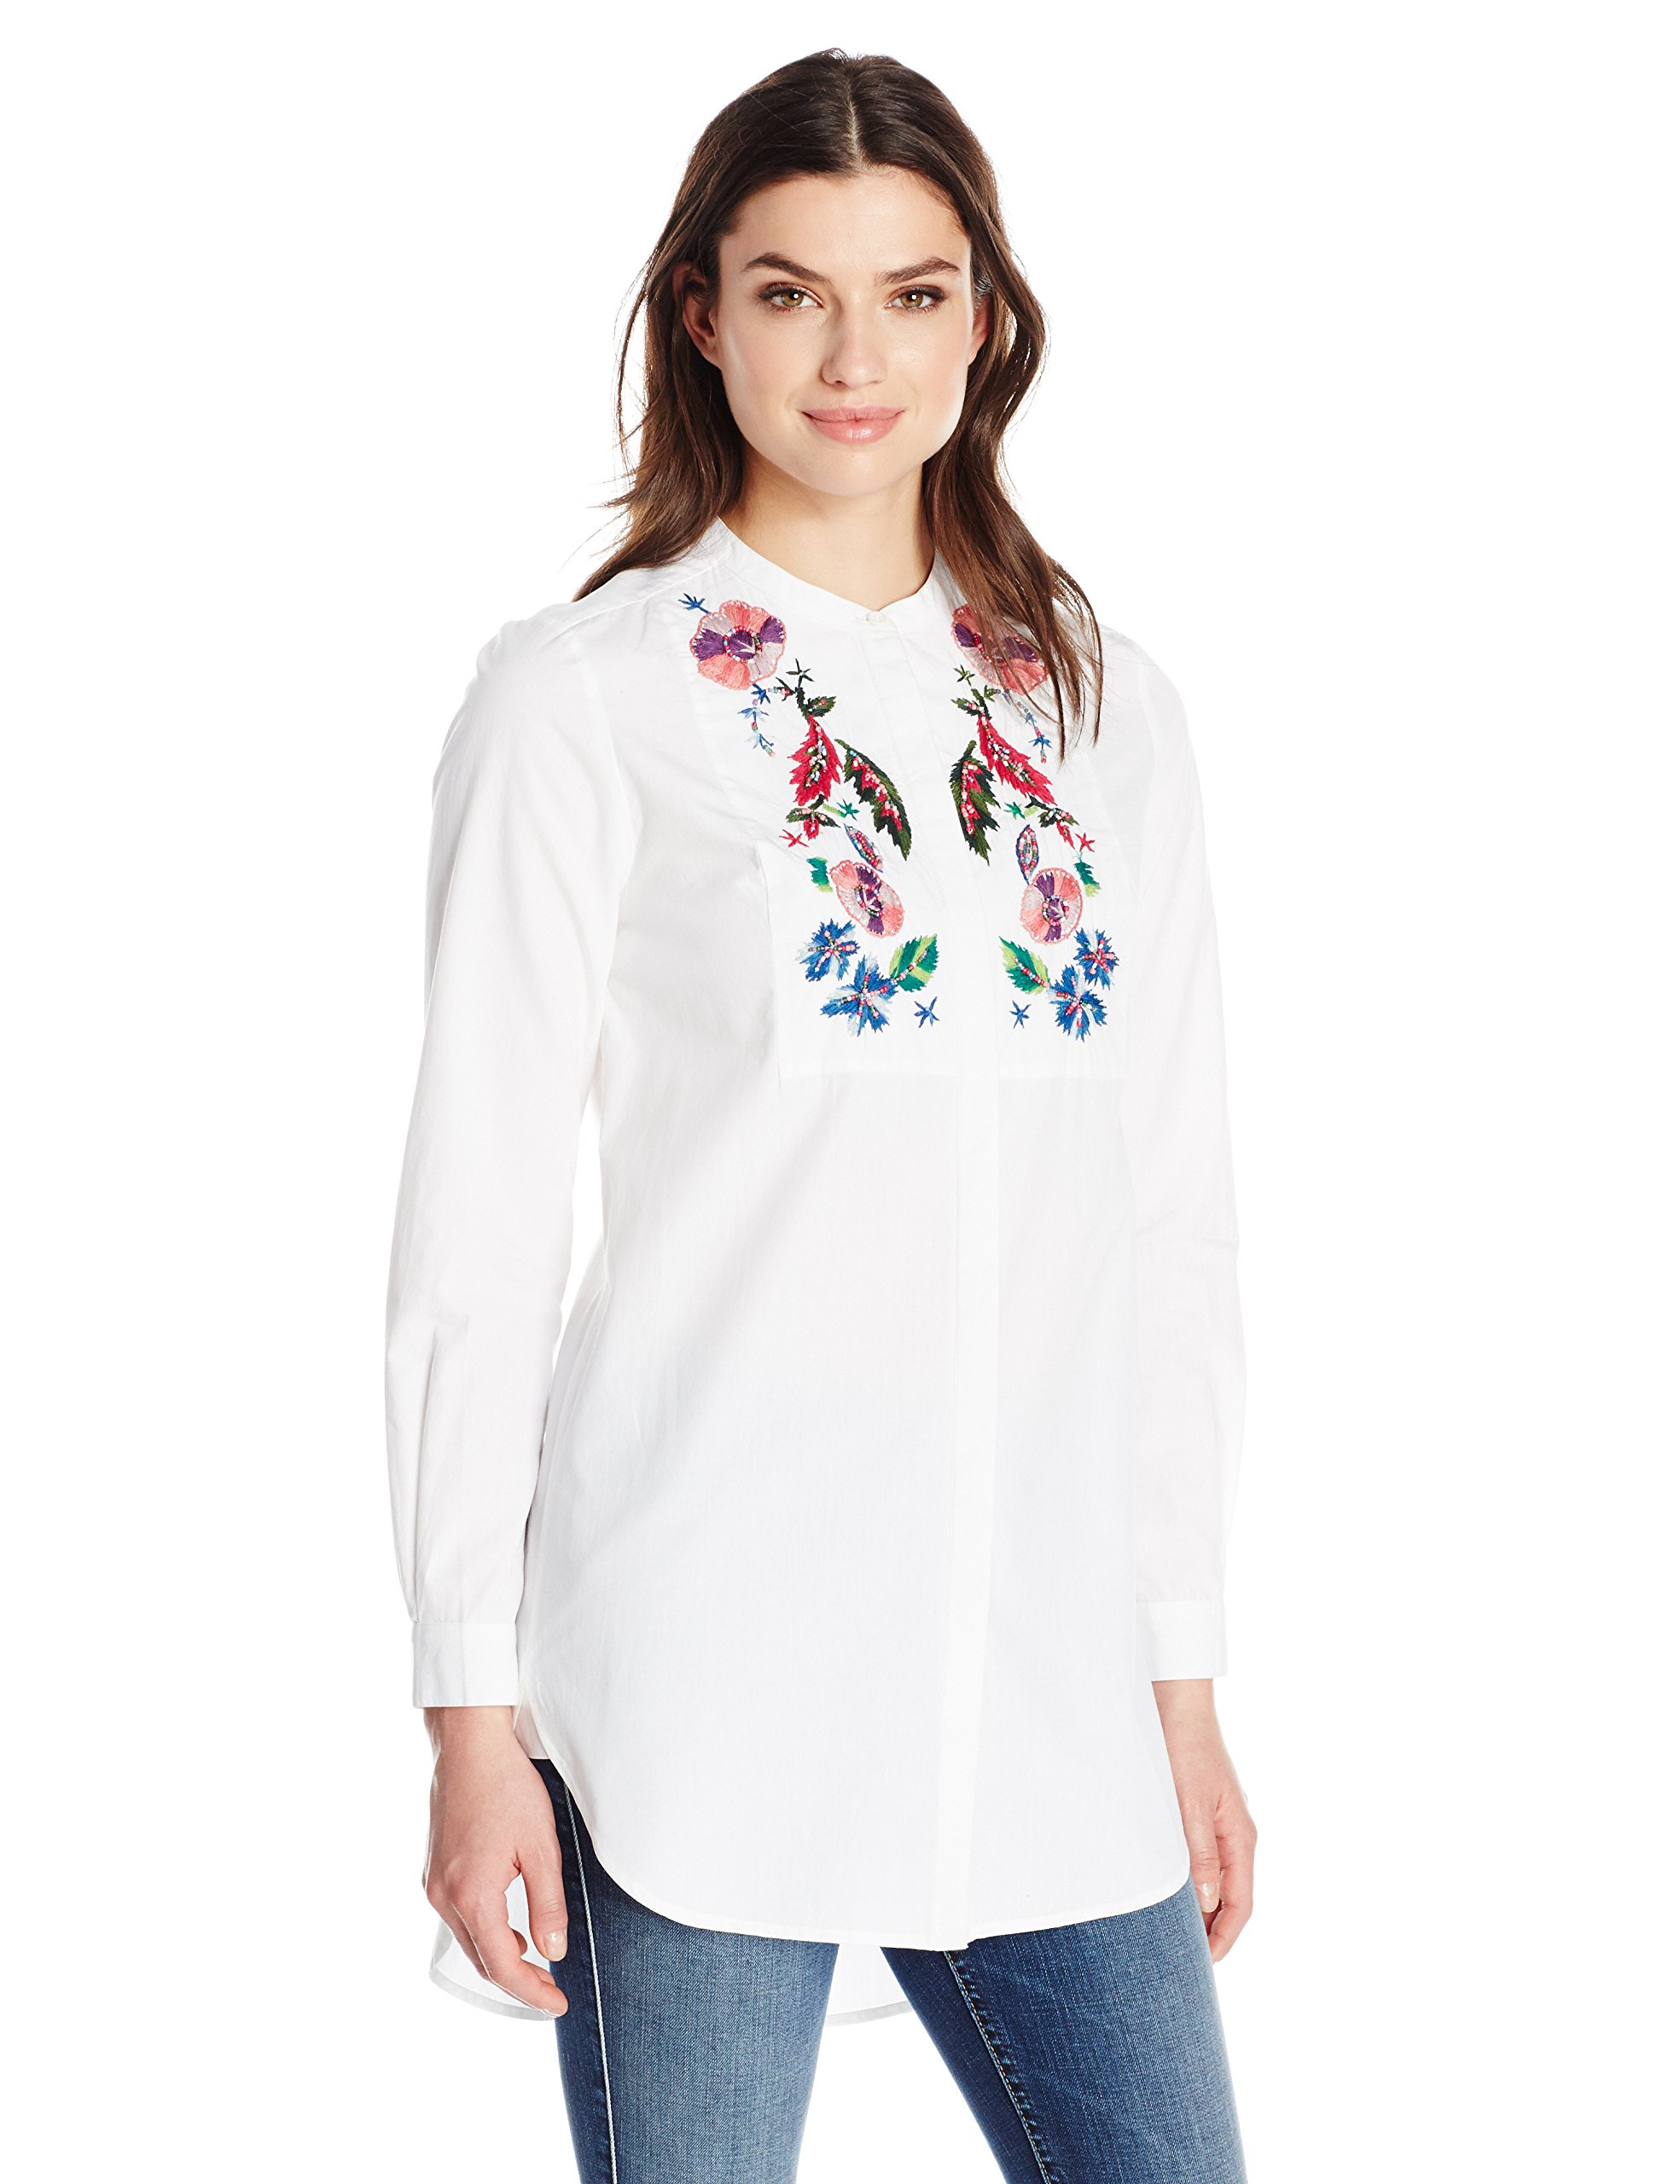 French Connection Women's Rothko Cotton Top, Summer White/Multi, 2